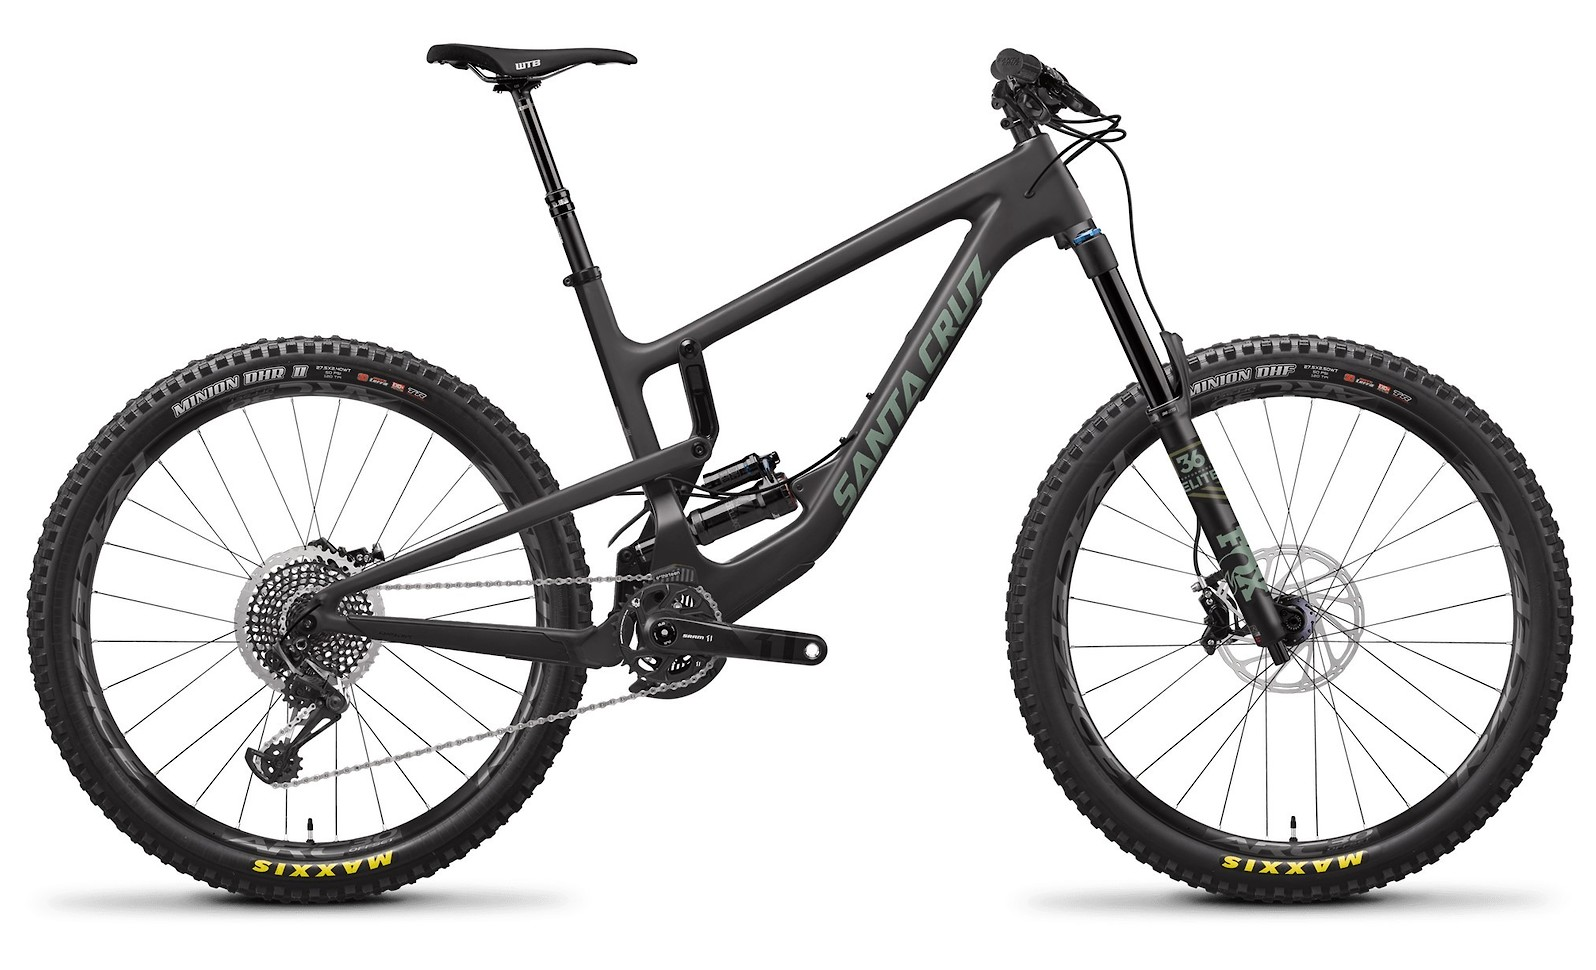 2019 Santa Cruz Nomad Carbon CC X01 Bike - Reviews